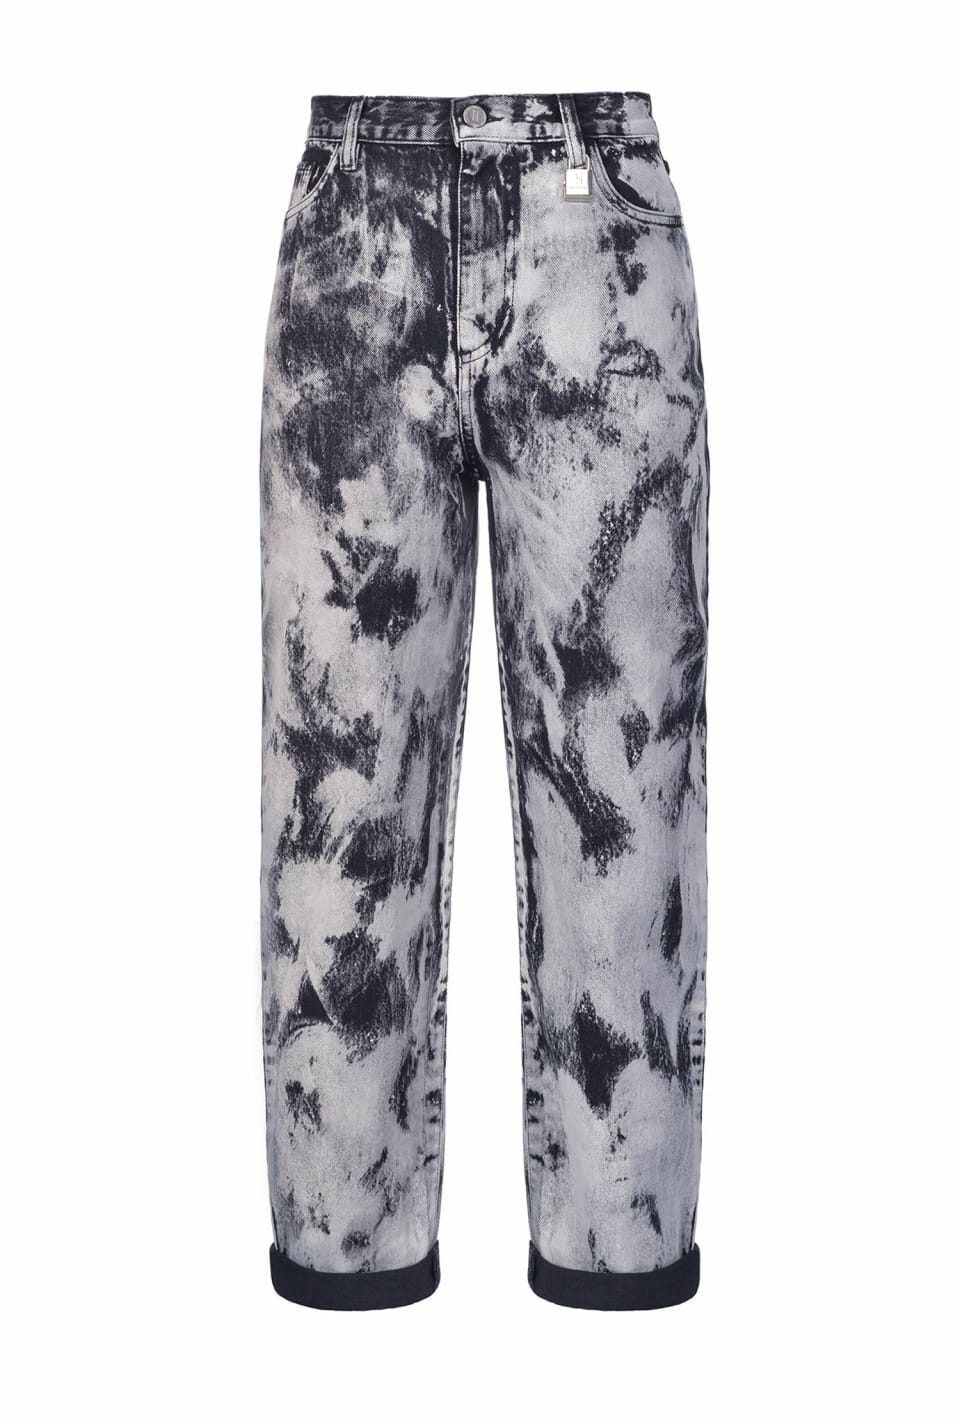 Marble-look trousers